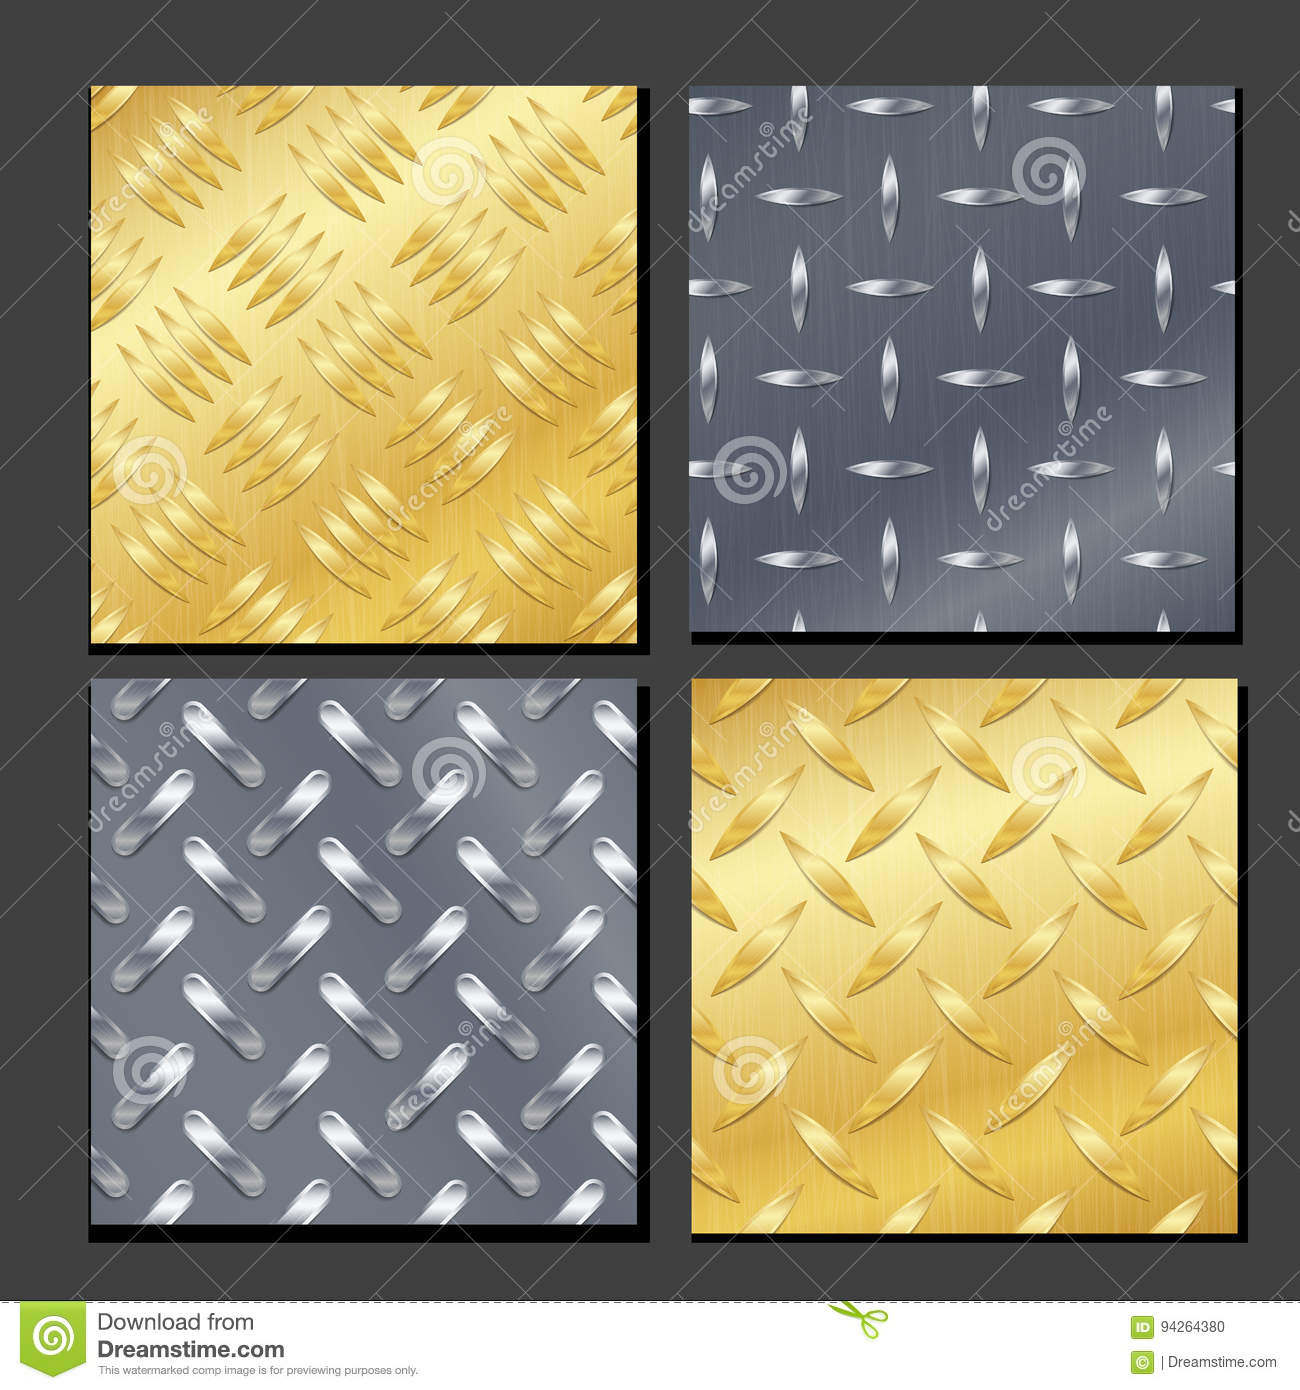 Nahtlose Diamond Metal Background Set With-Schritt-Platte Gold, Chrome, Silber, Stahl, Aluminium Vektor-realistisches Muster